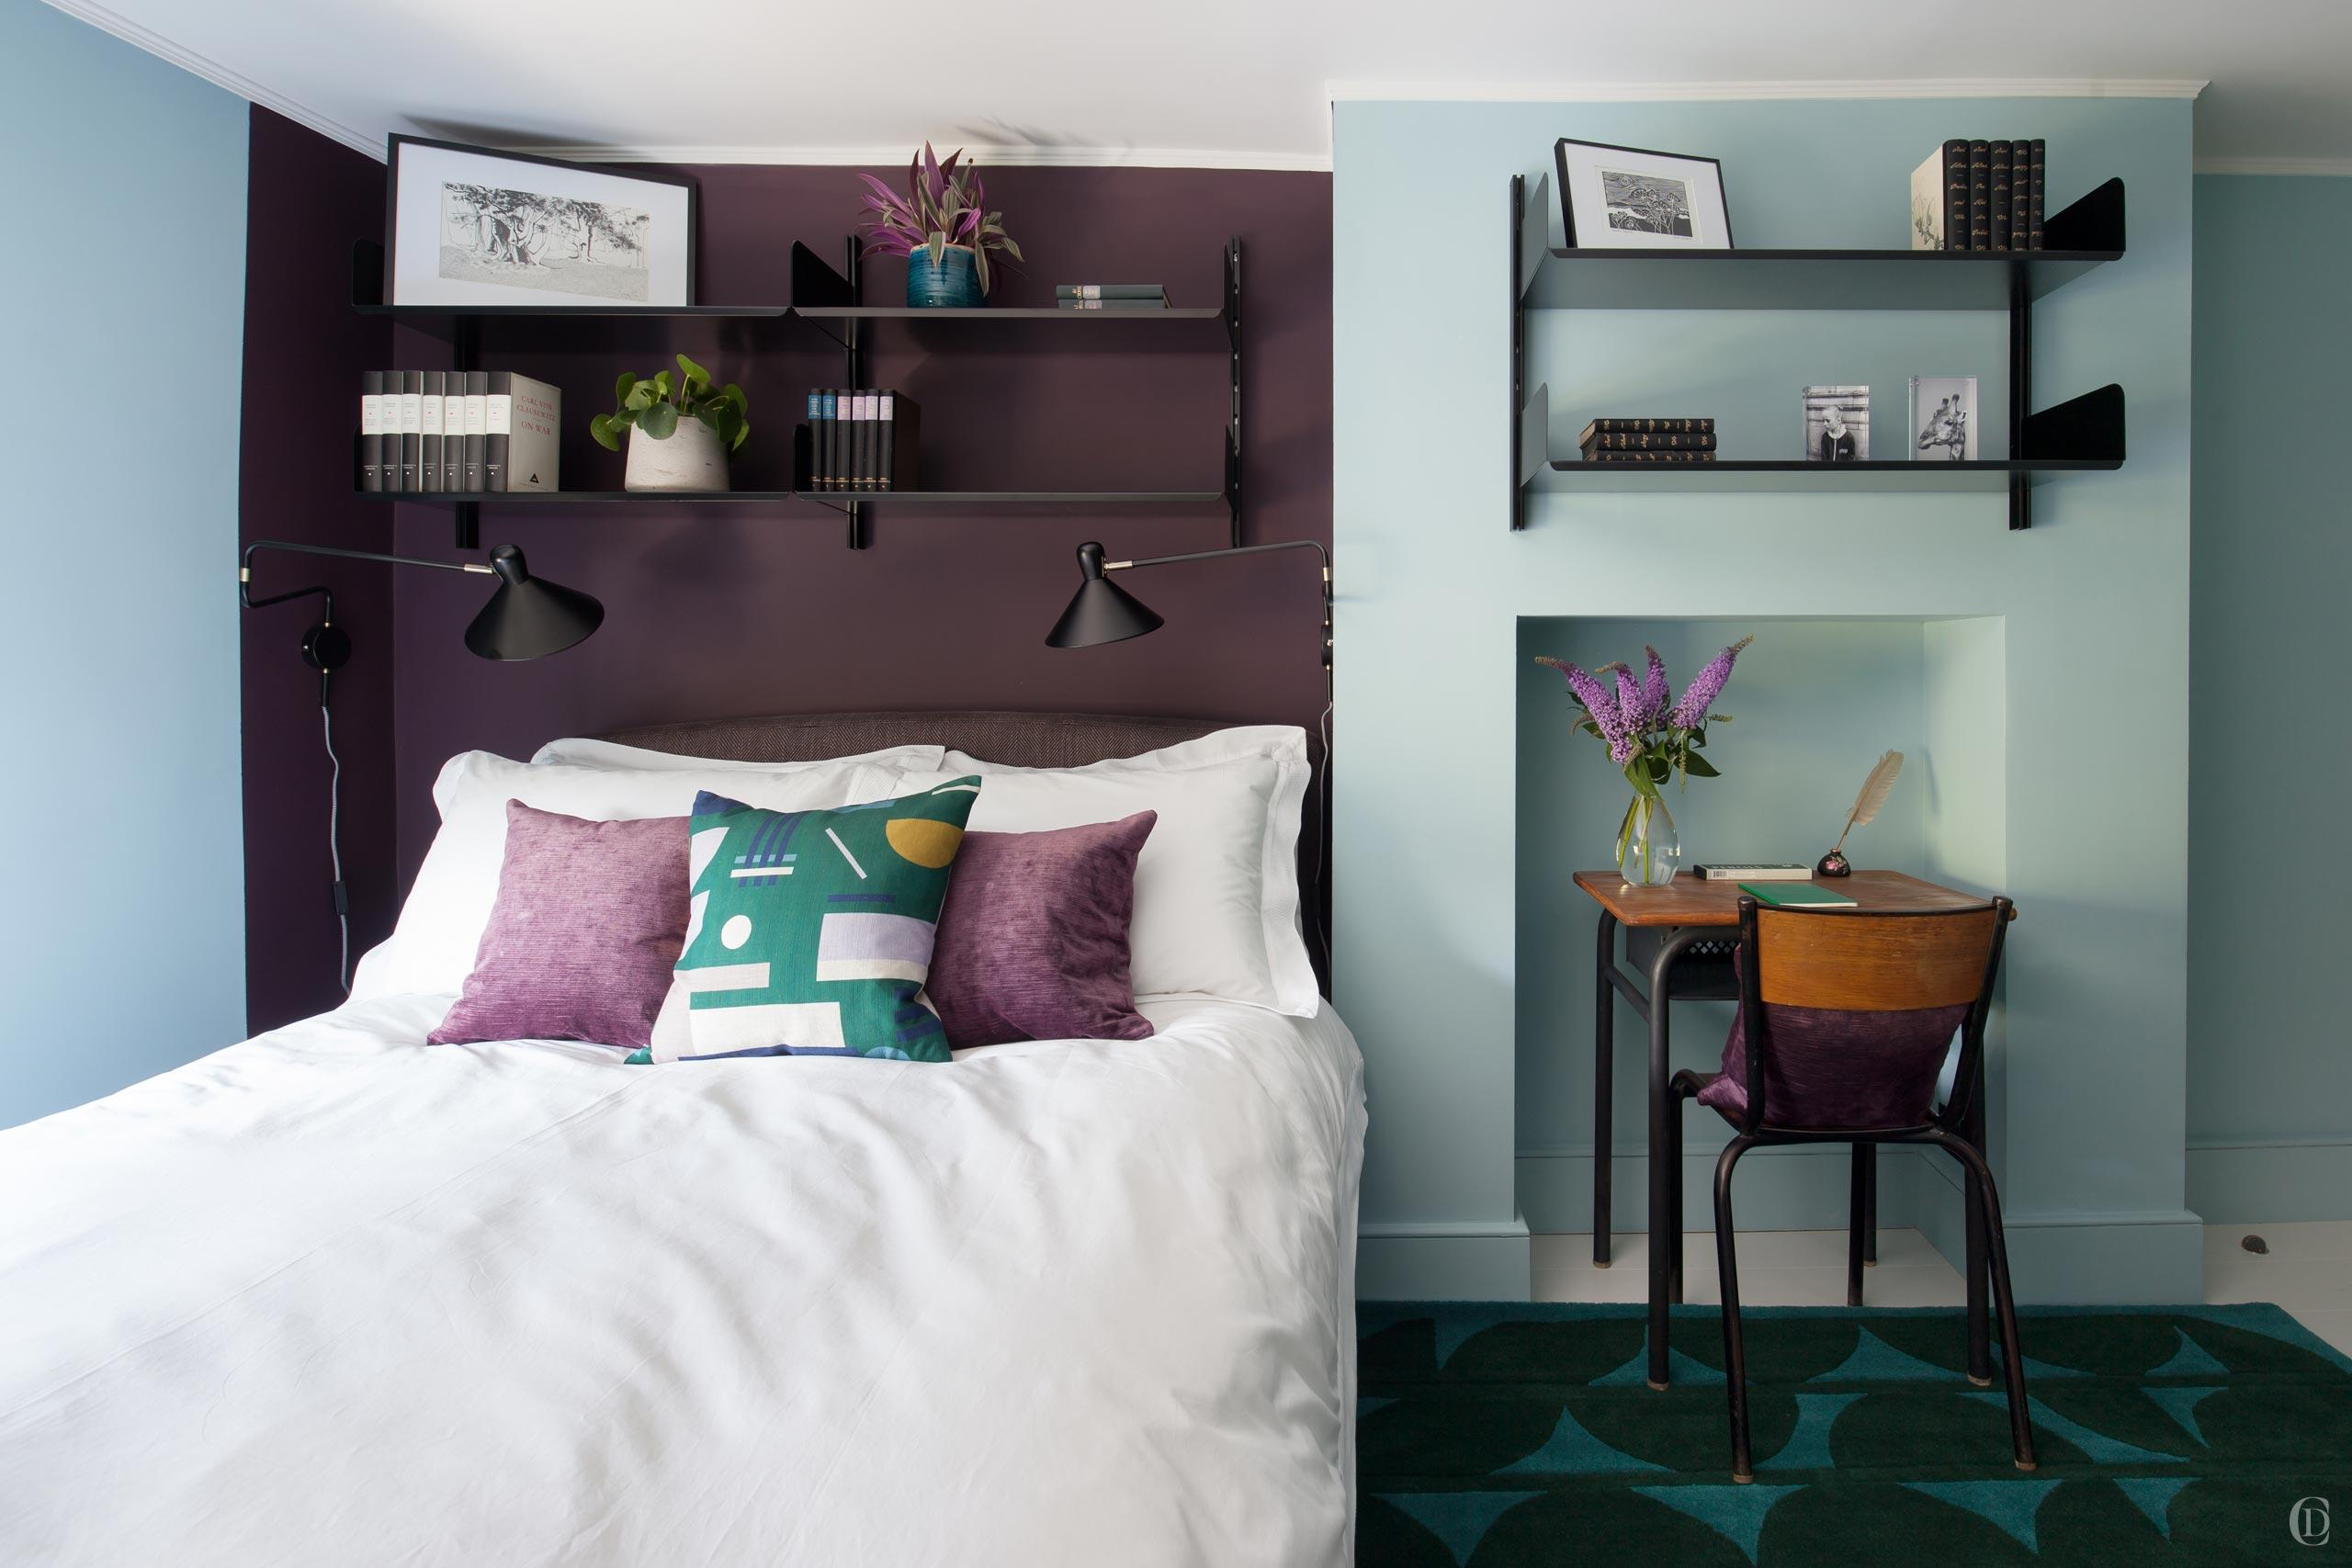 Interior Designer Claudia Dorsch Shares Ideas For Small Bedrooms